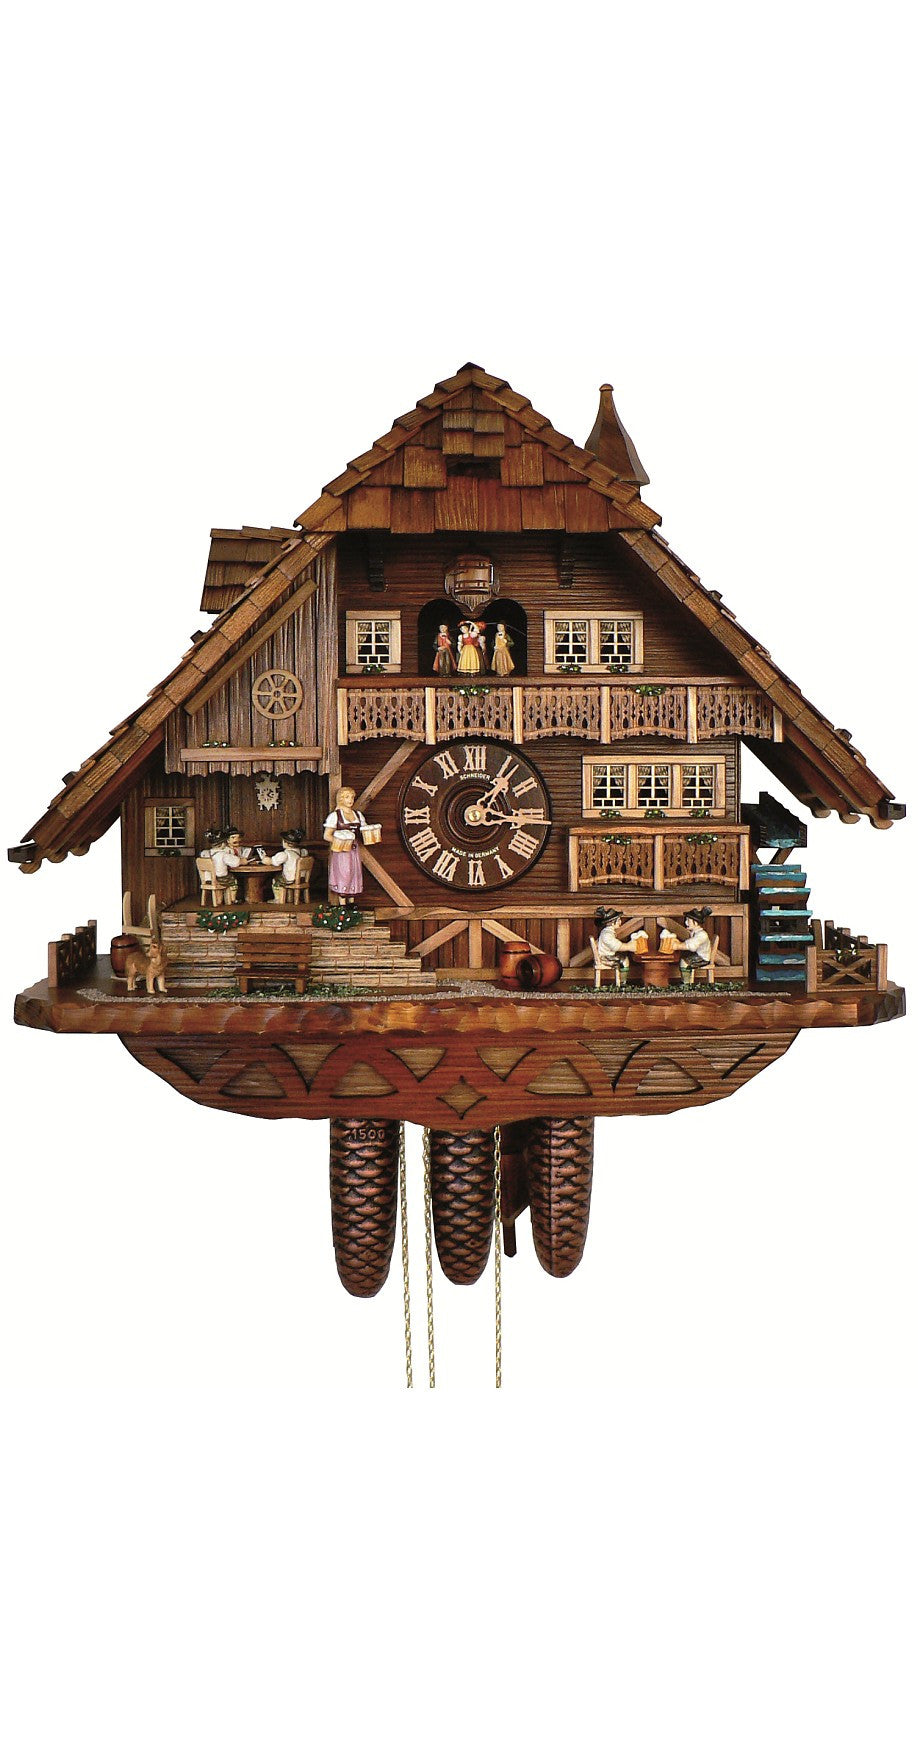 Cuckoo Clock of the Year 2014 - 8-Day Movement with Music - Cuckoo Clock Meister